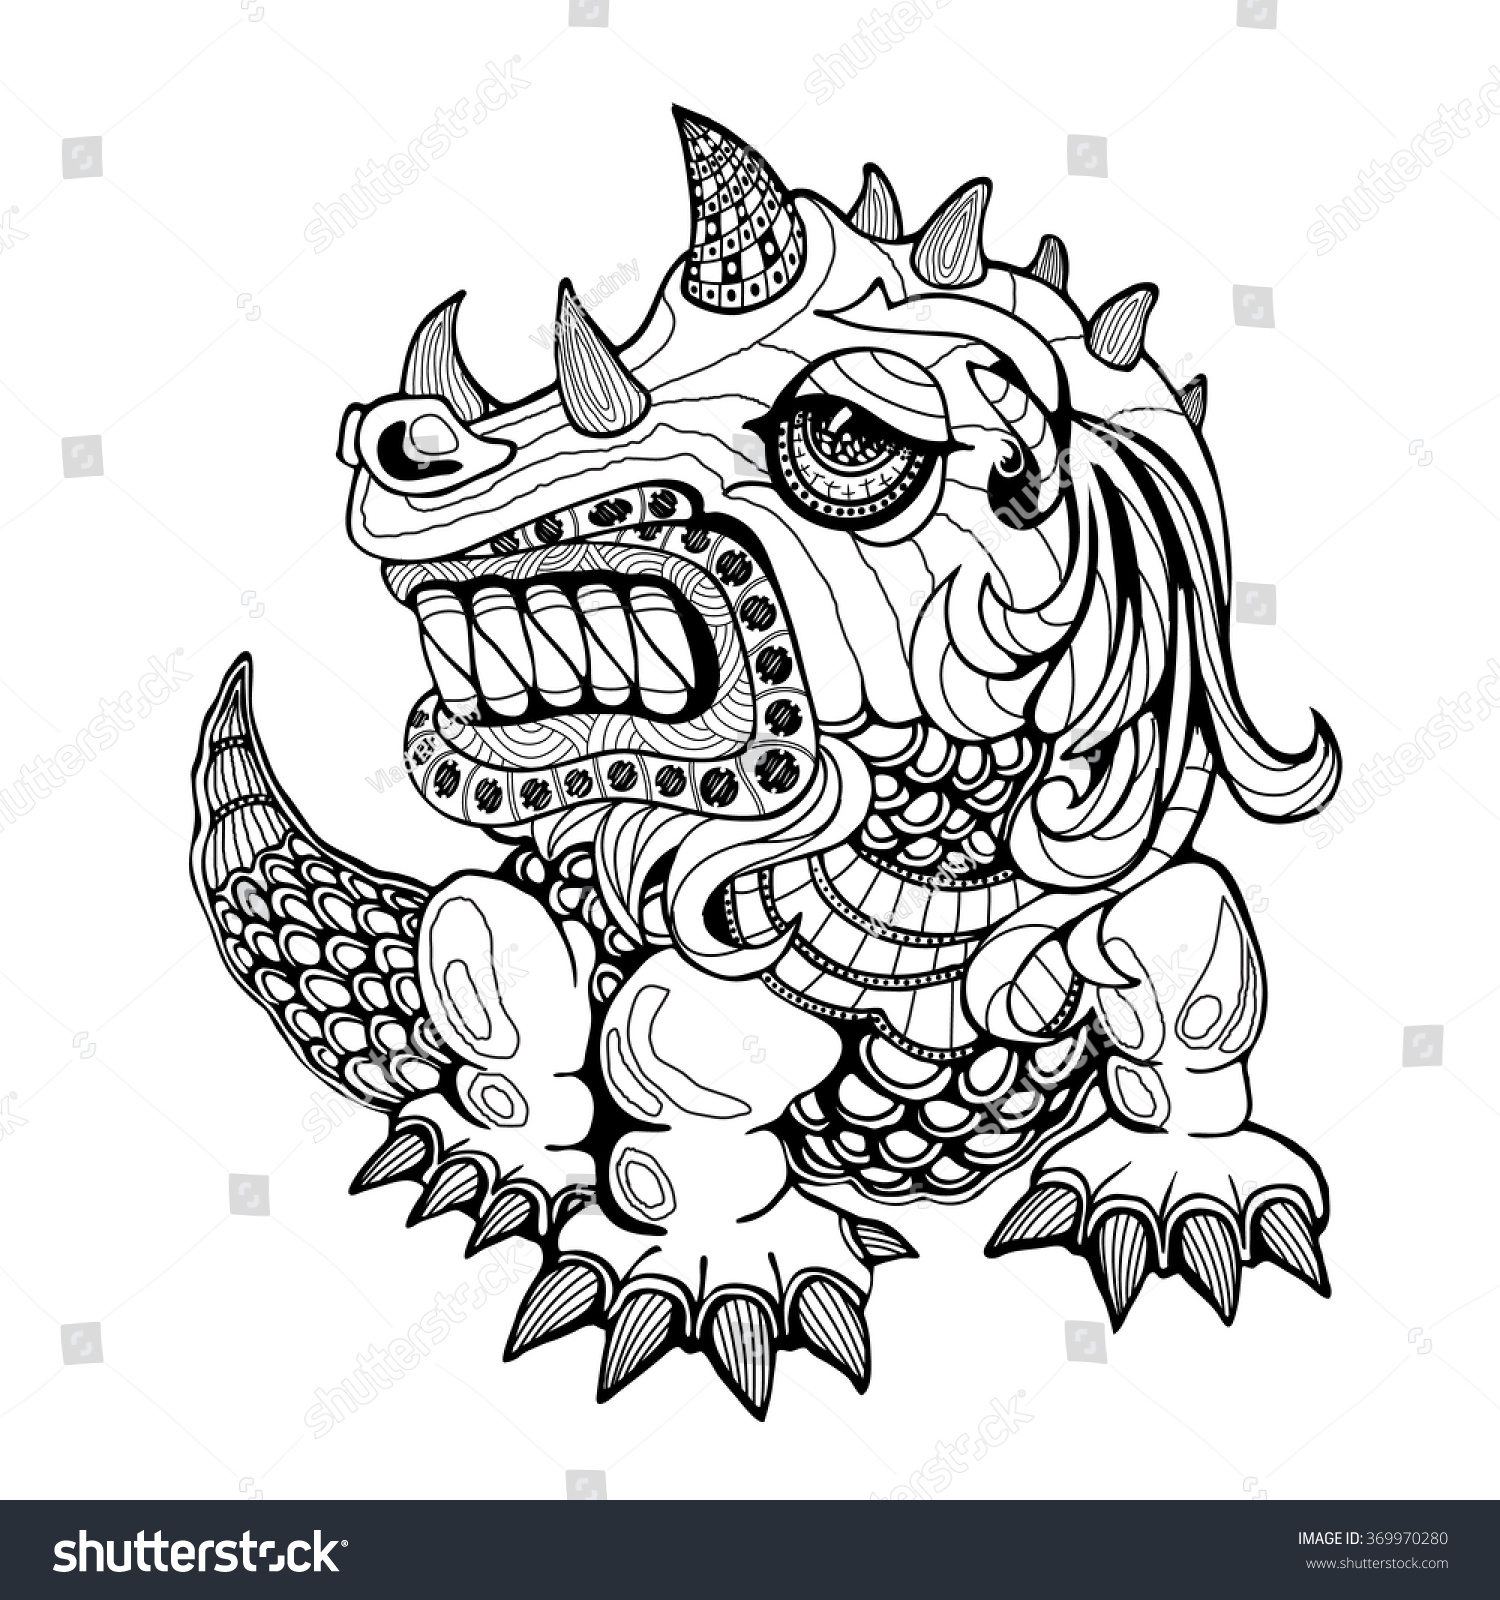 Hand draw ornamental dragon outline illustration stock vector hand draw ornamental dragon outline illustration with decorative ornamentszentangle stylized dragon ornament ccuart Images